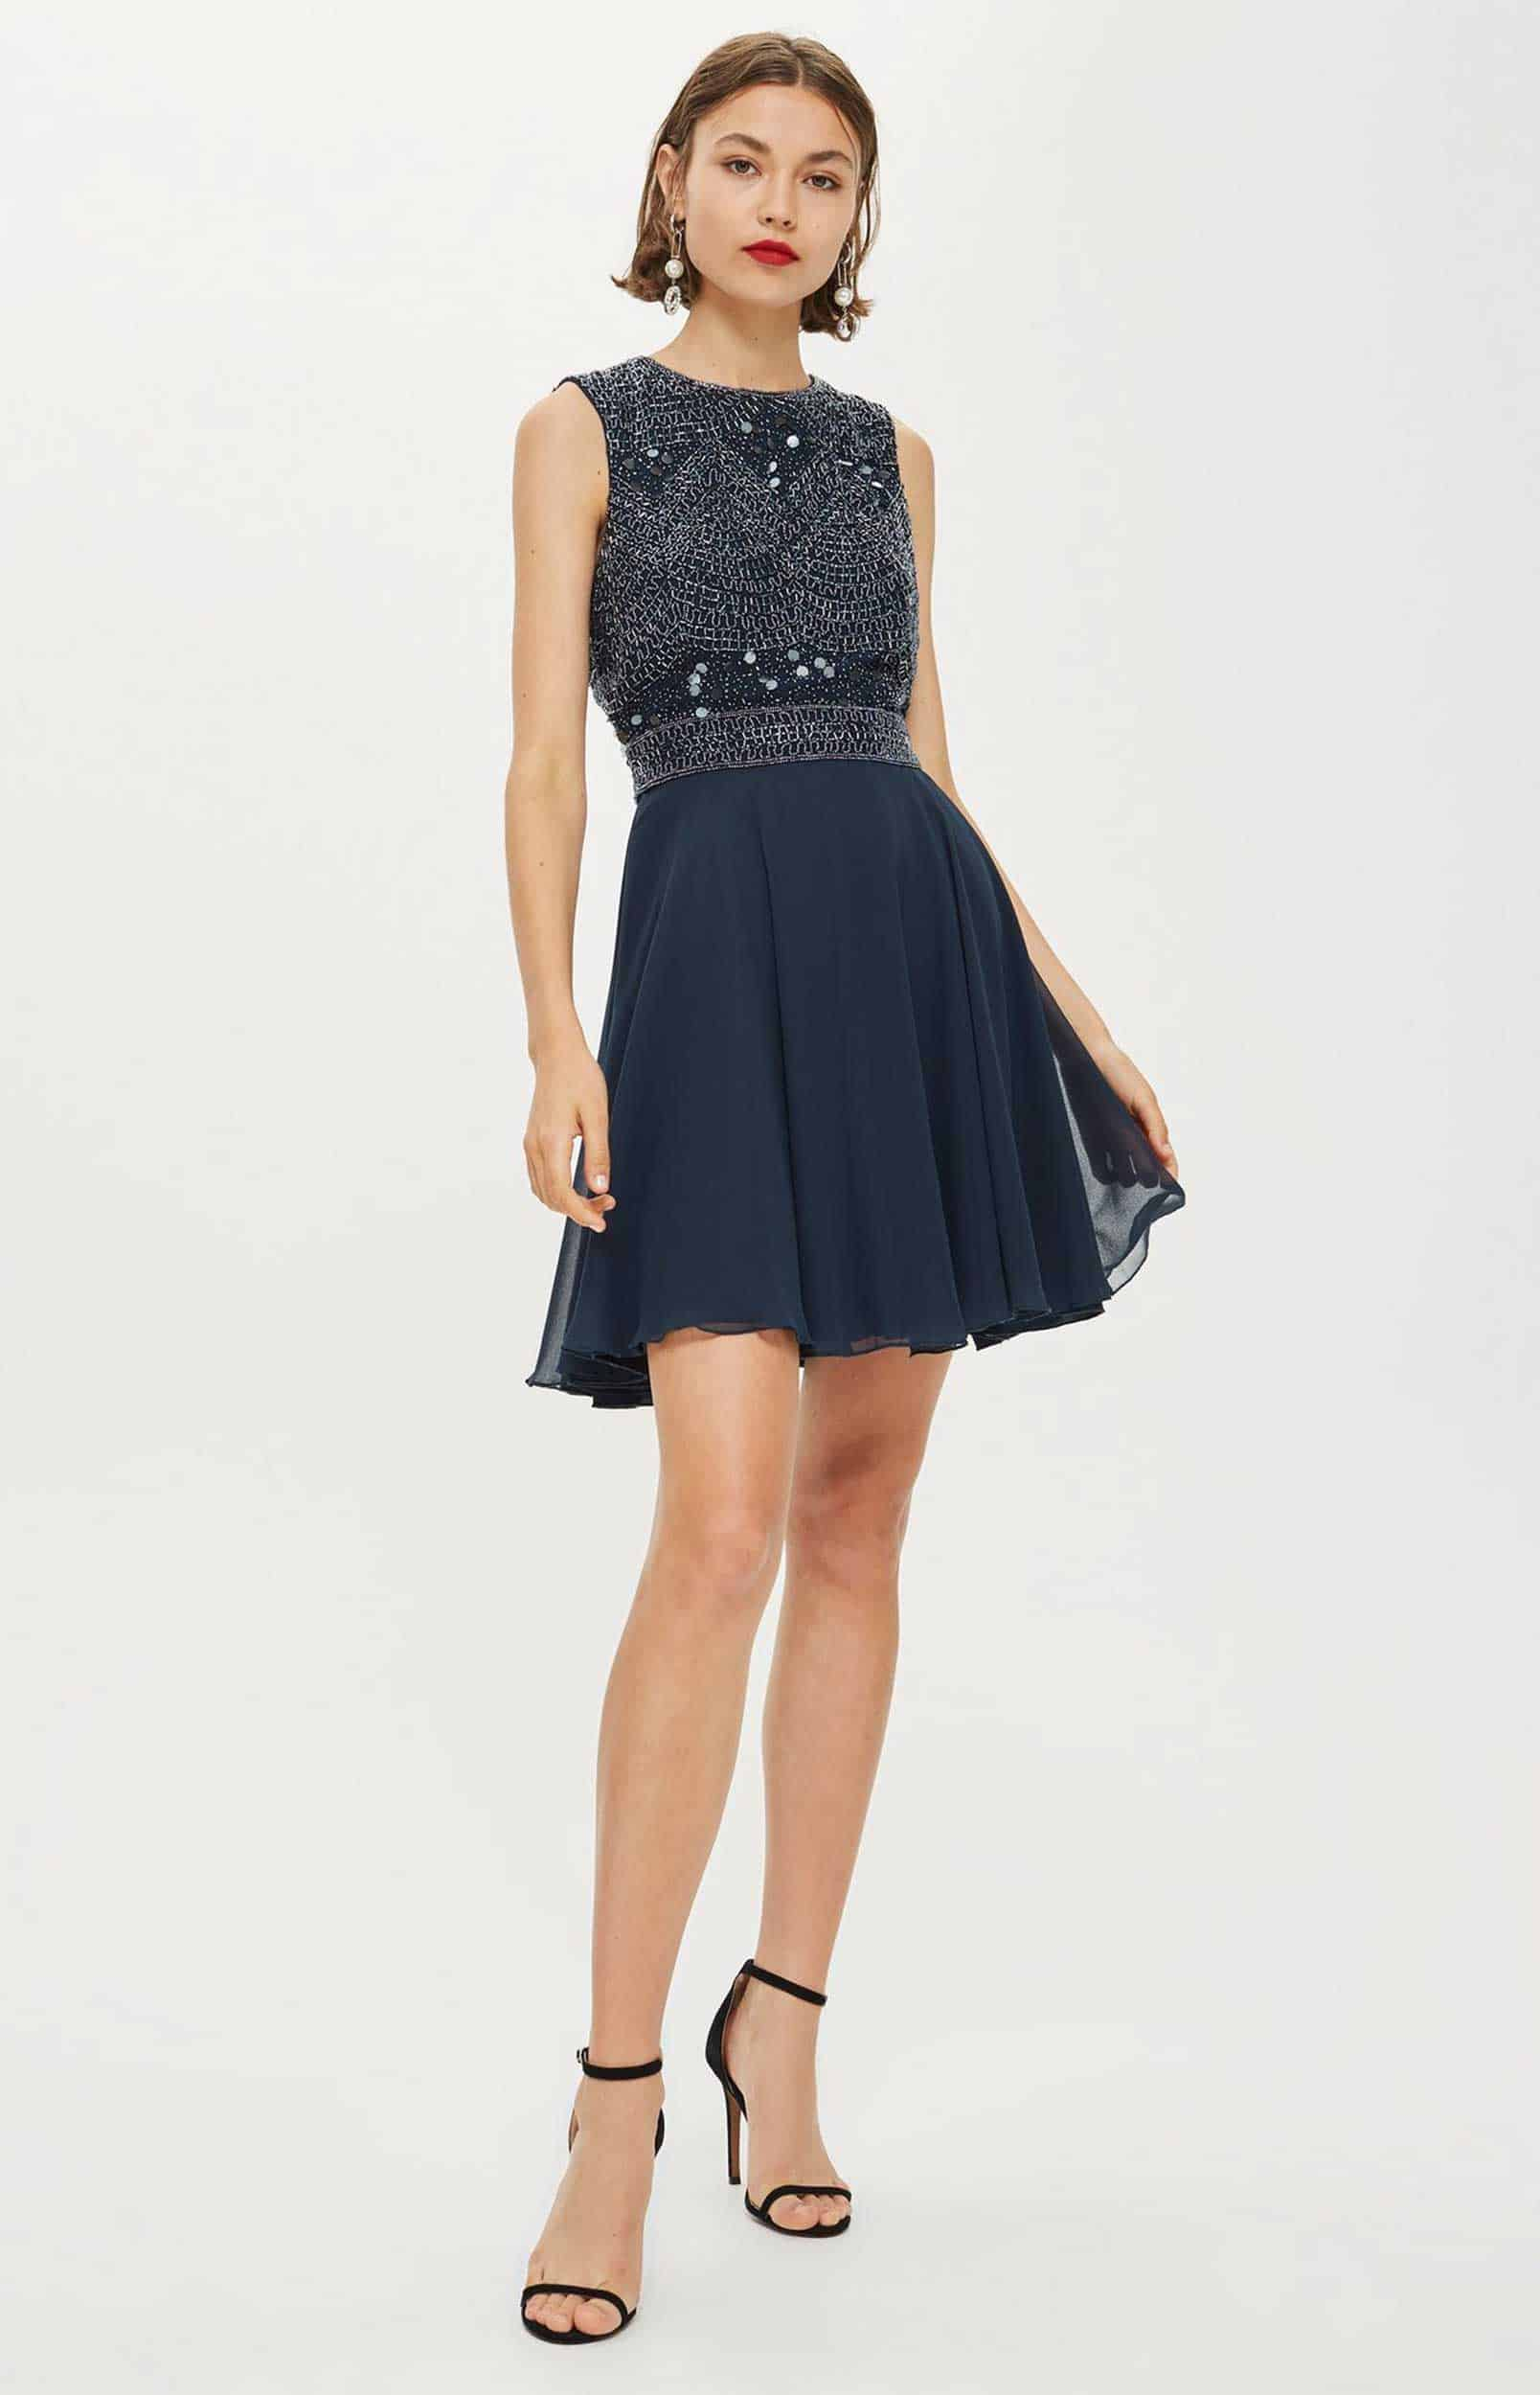 Iznajmljivanje haljina Nis - Lace & Beads - Rent A Dress Nis